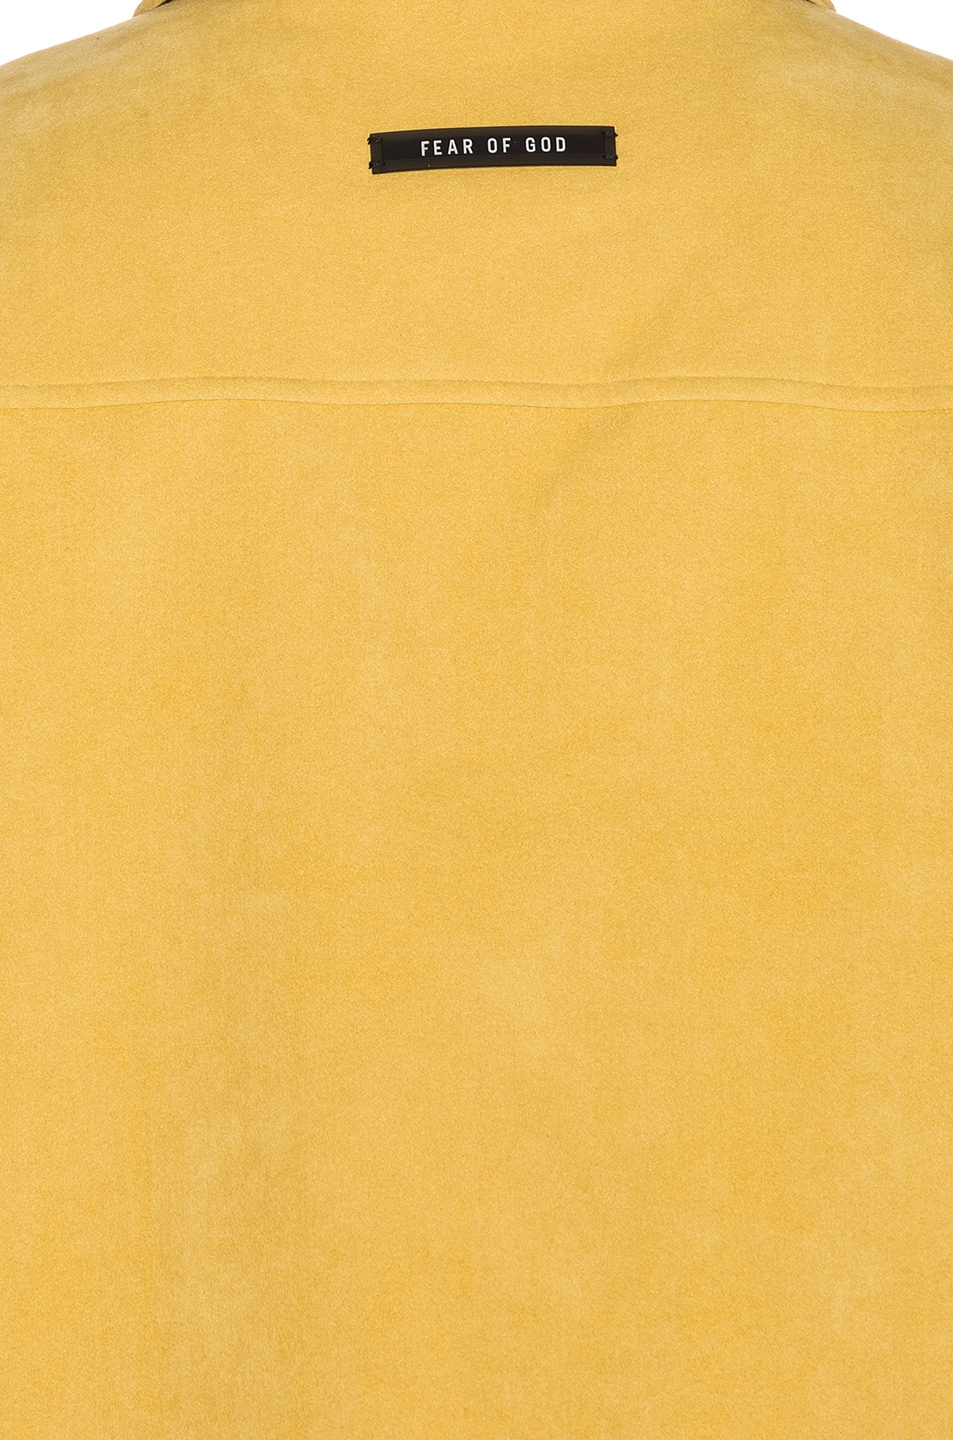 Image 6 of Fear of God Suede Shirt Jacket in Garden Glove Yellow